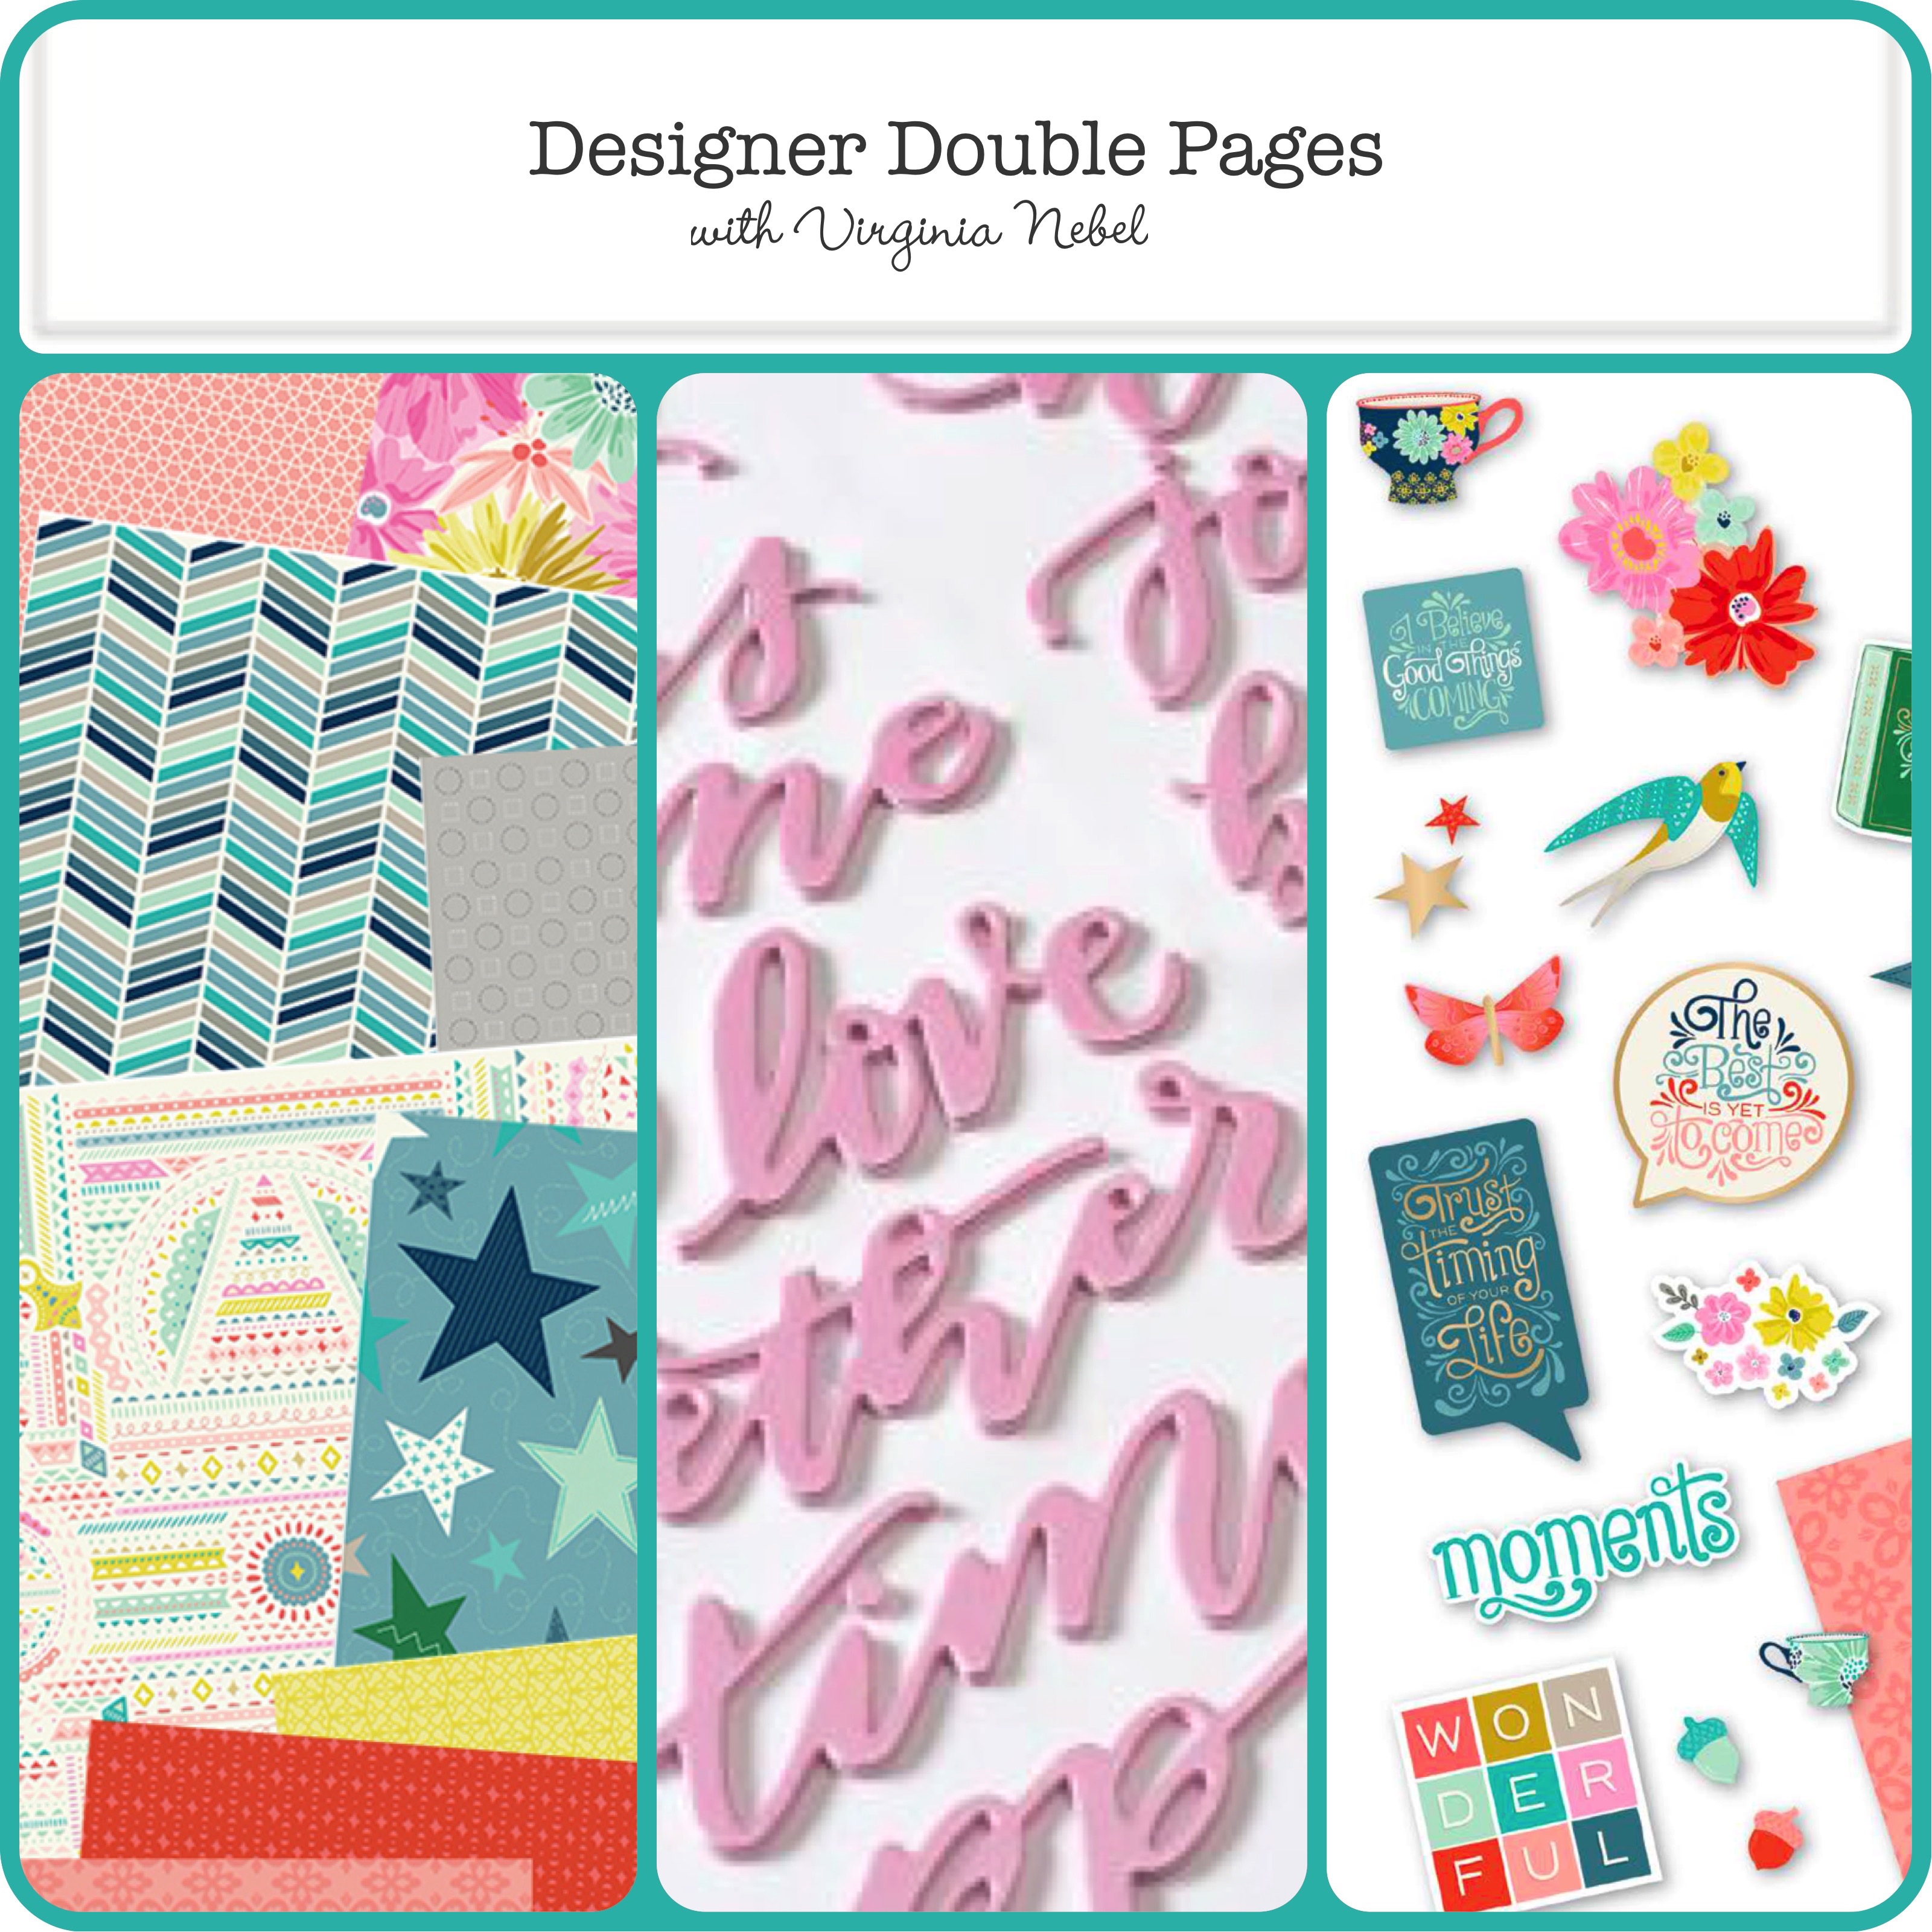 Designer Doubles Pages with Virginia Nebel